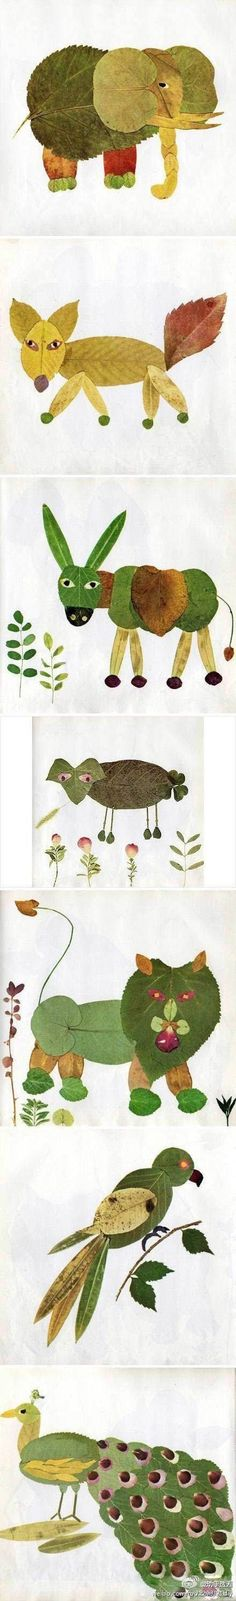 Fall art project - making animal pictures out of leaves. Cannot wait to try…